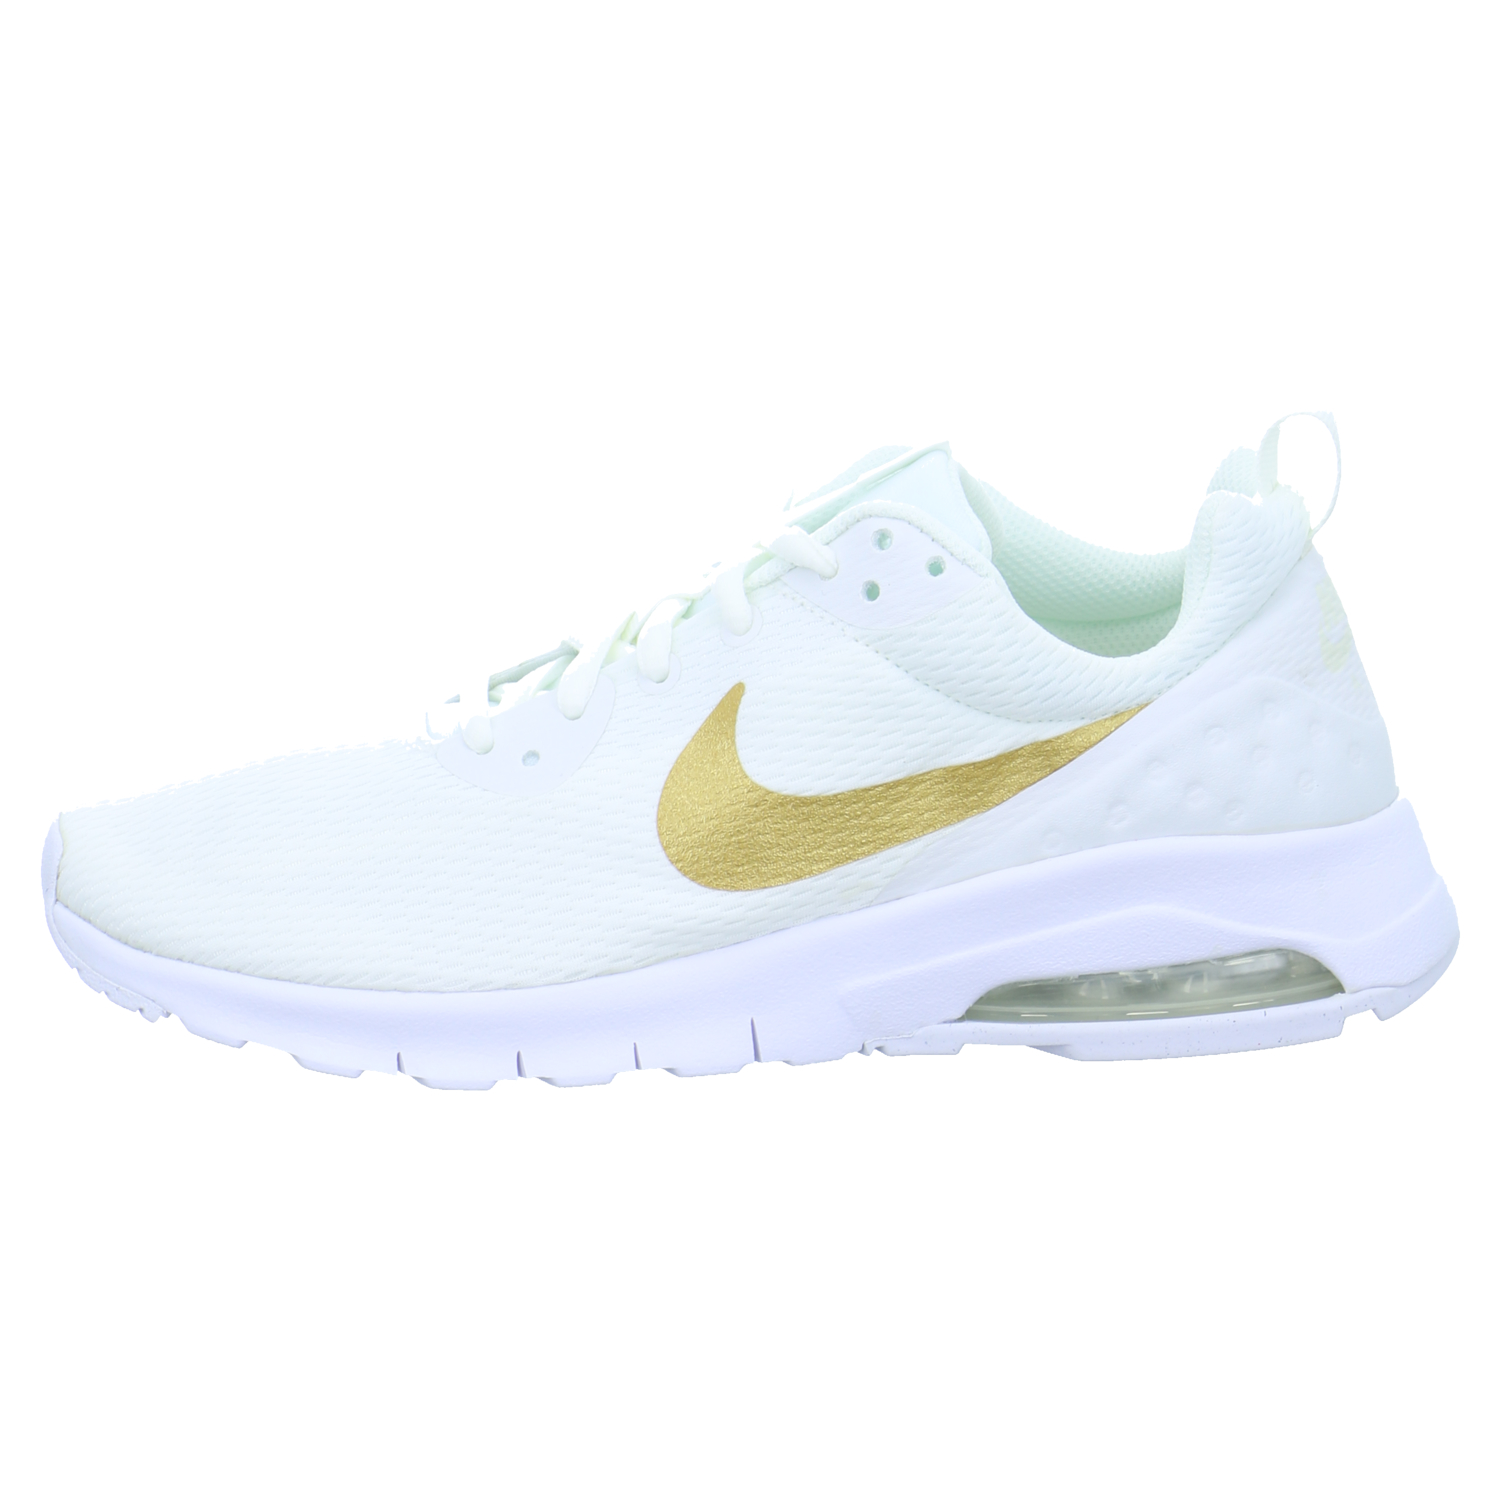 Nike Air Max Motion LW GS Kinder Schuhe Sneaker Weiß Gold Sport Training |  eBay